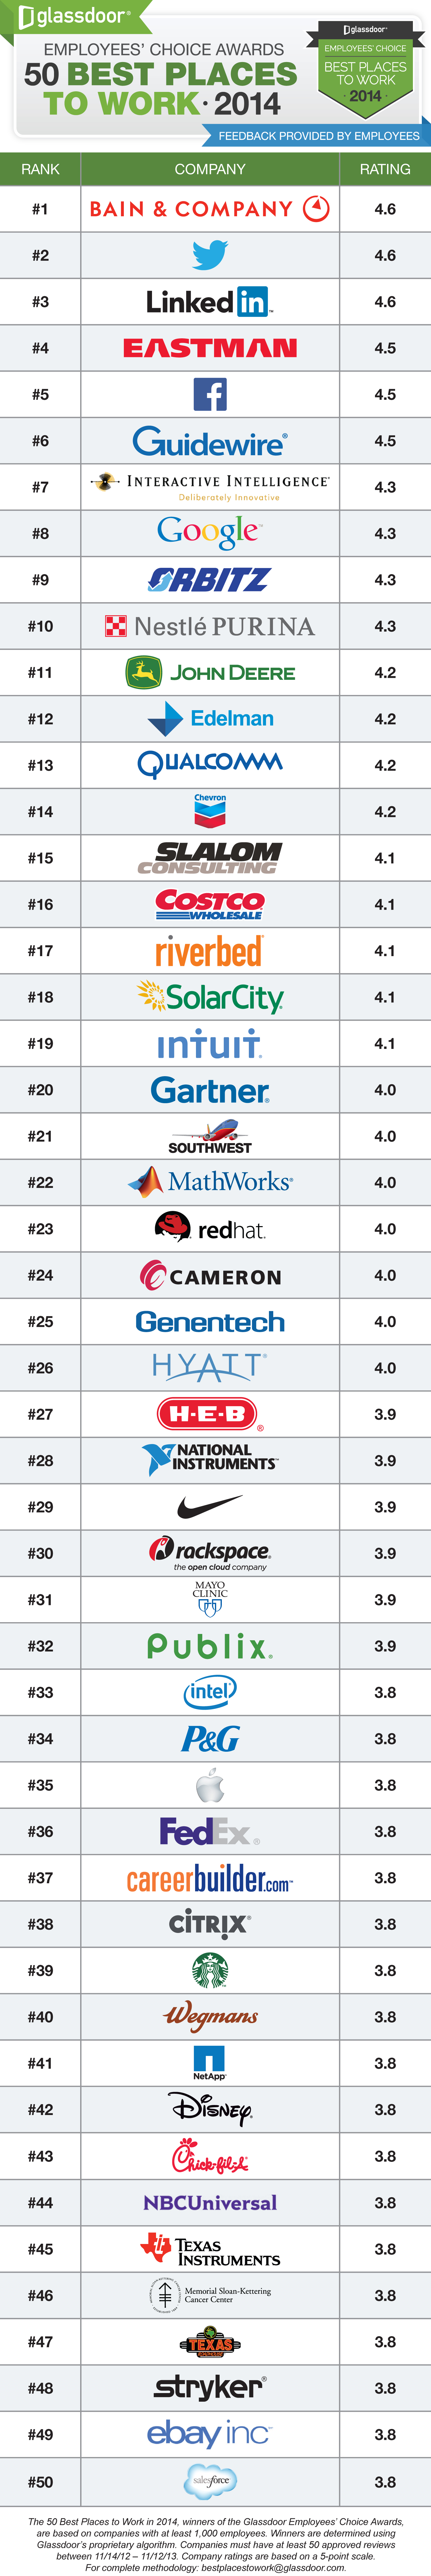 Glassdoor 50 Best Places to Work 2014 Glassdoor: Twitter dethrones Facebook as the best tech company to work for, ending three year streak